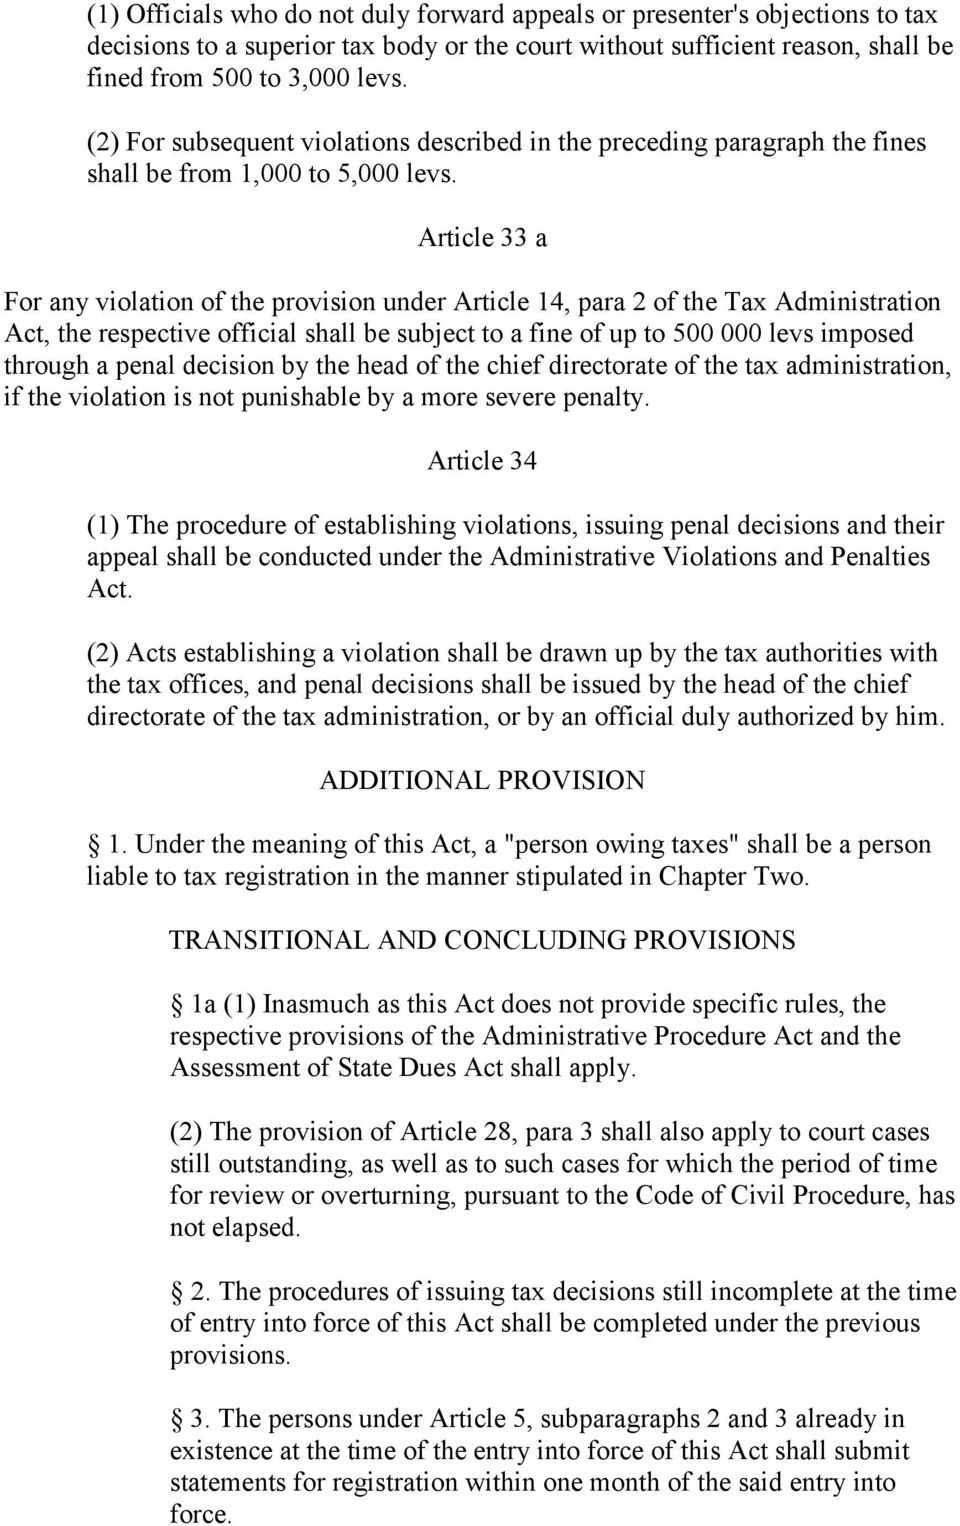 Article 33 a For any violation of the provision under Article 14, para 2 of the Tax Administration Act, the respective official shall be subject to a fine of up to 500 000 levs imposed through a